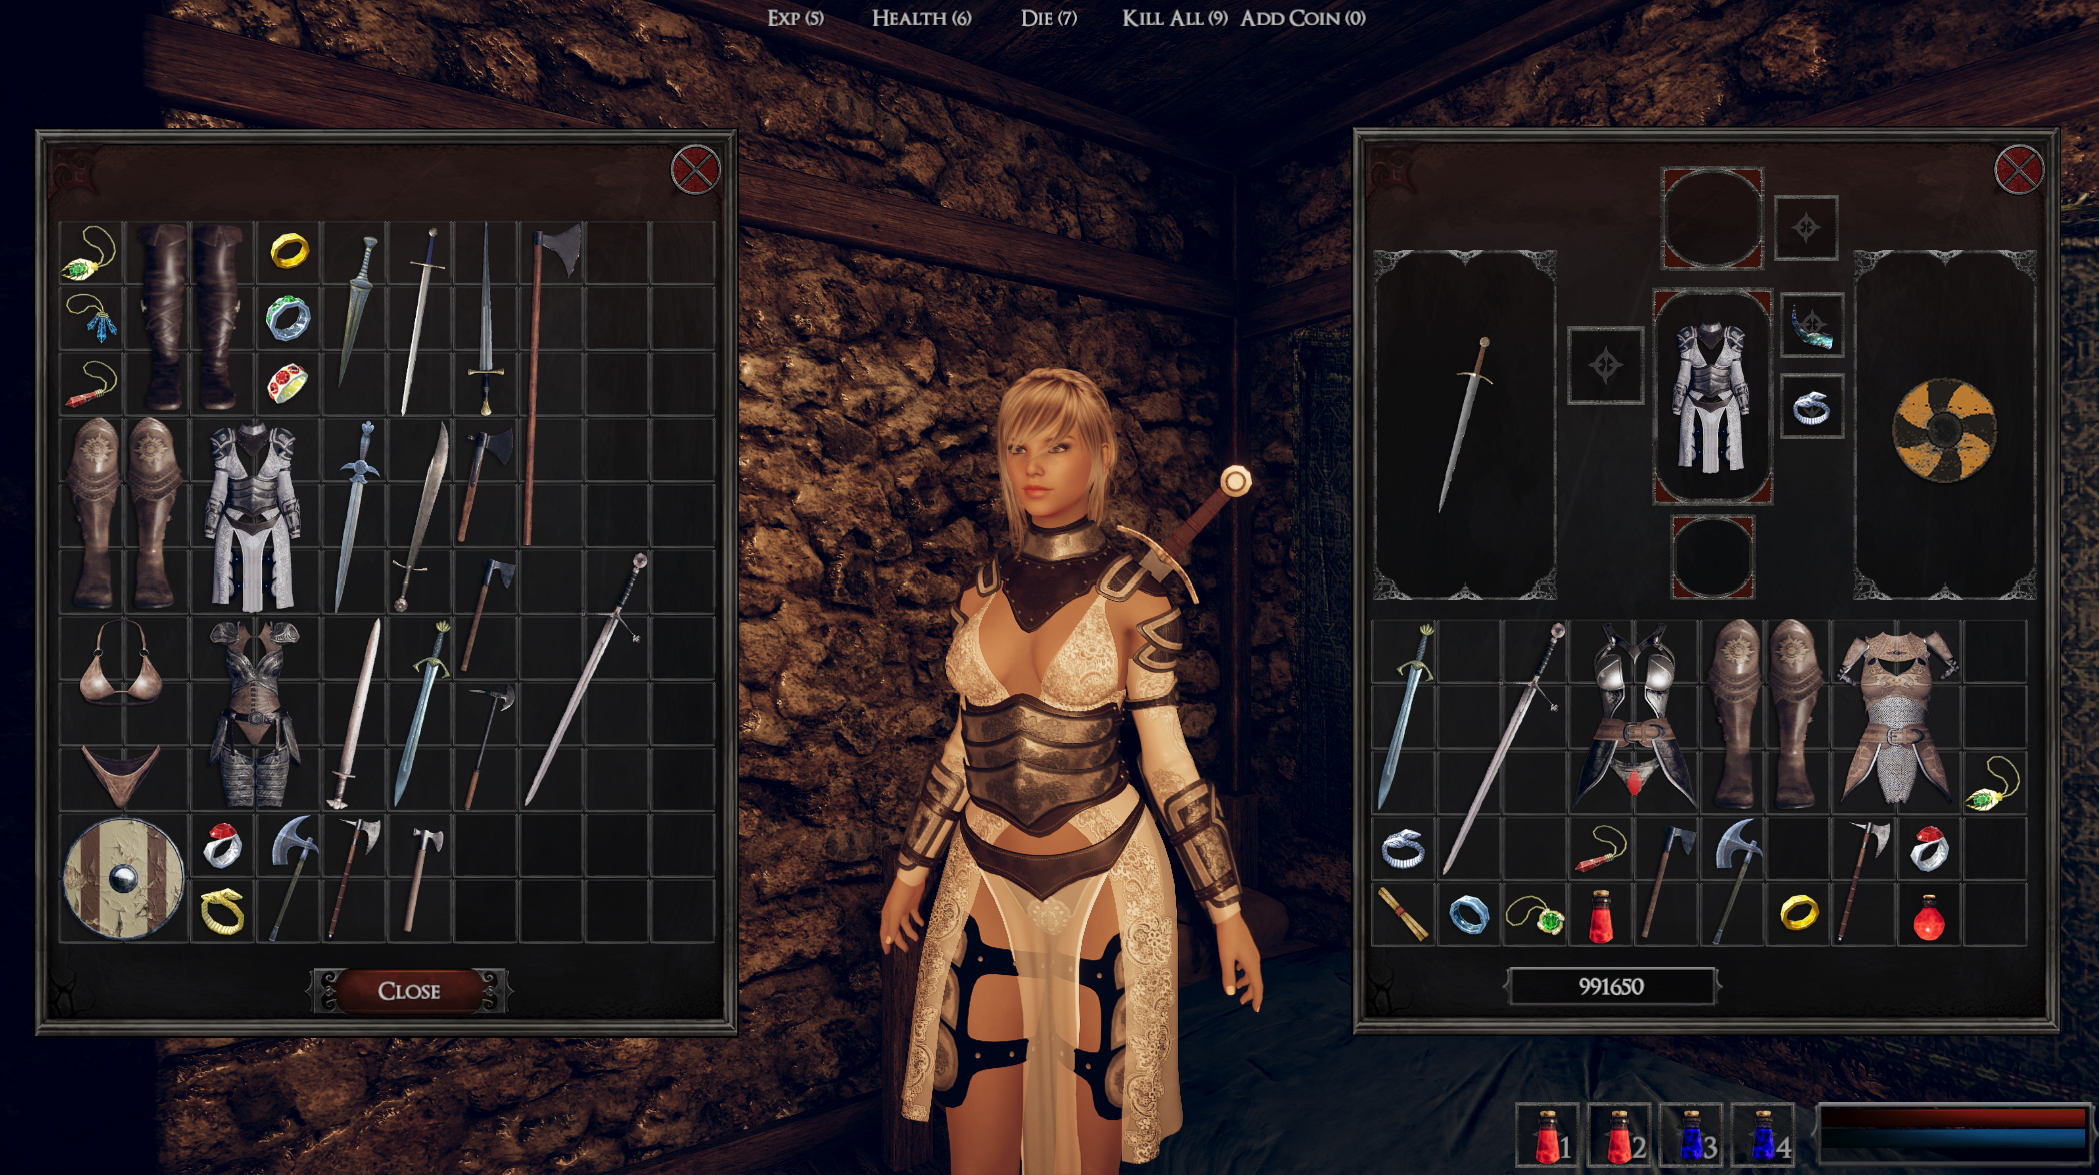 beauty and violence valkyries inventory